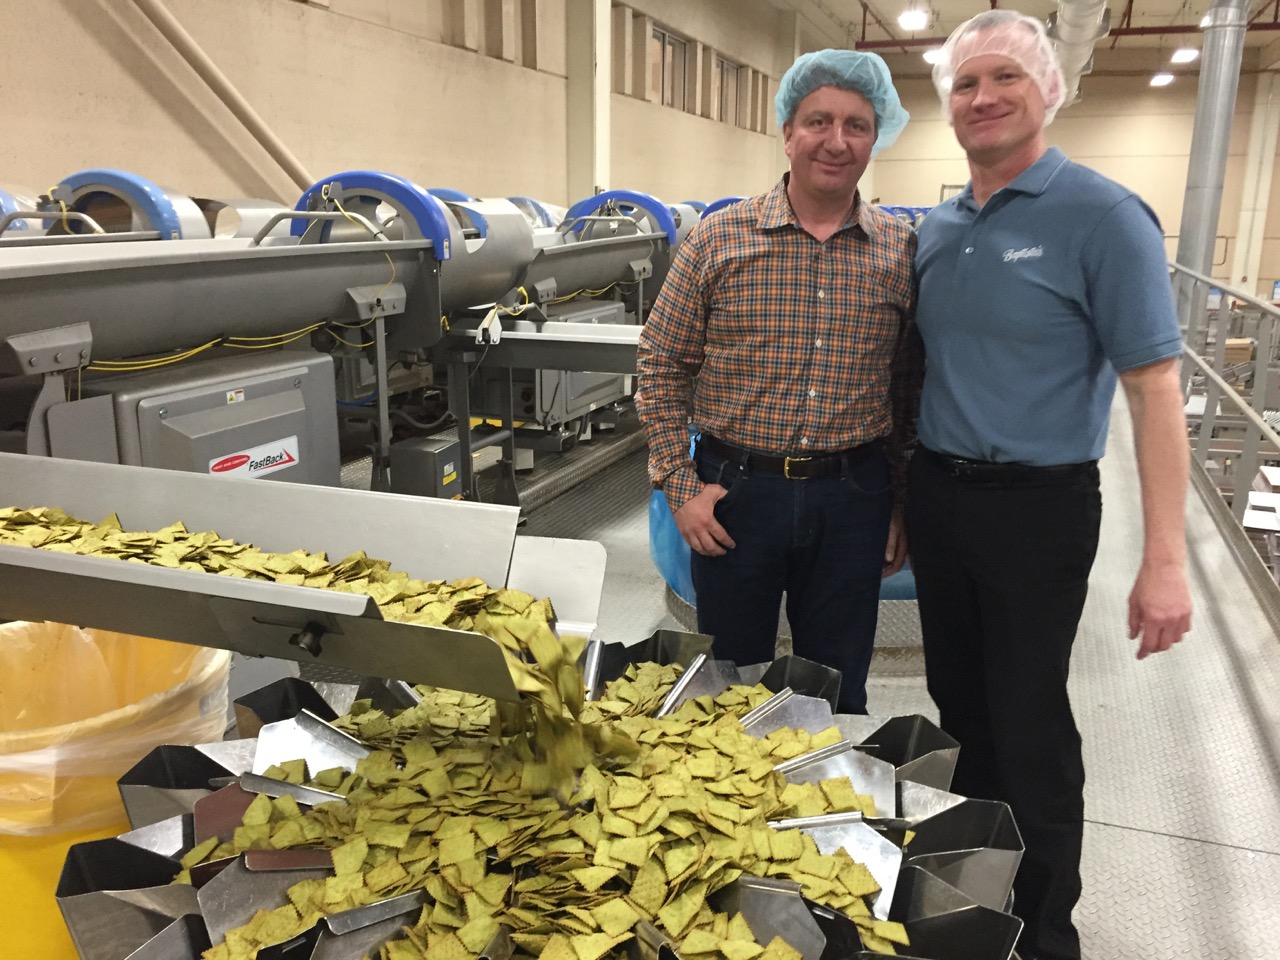 Jerry Bello in his pasta chips manufacturing center